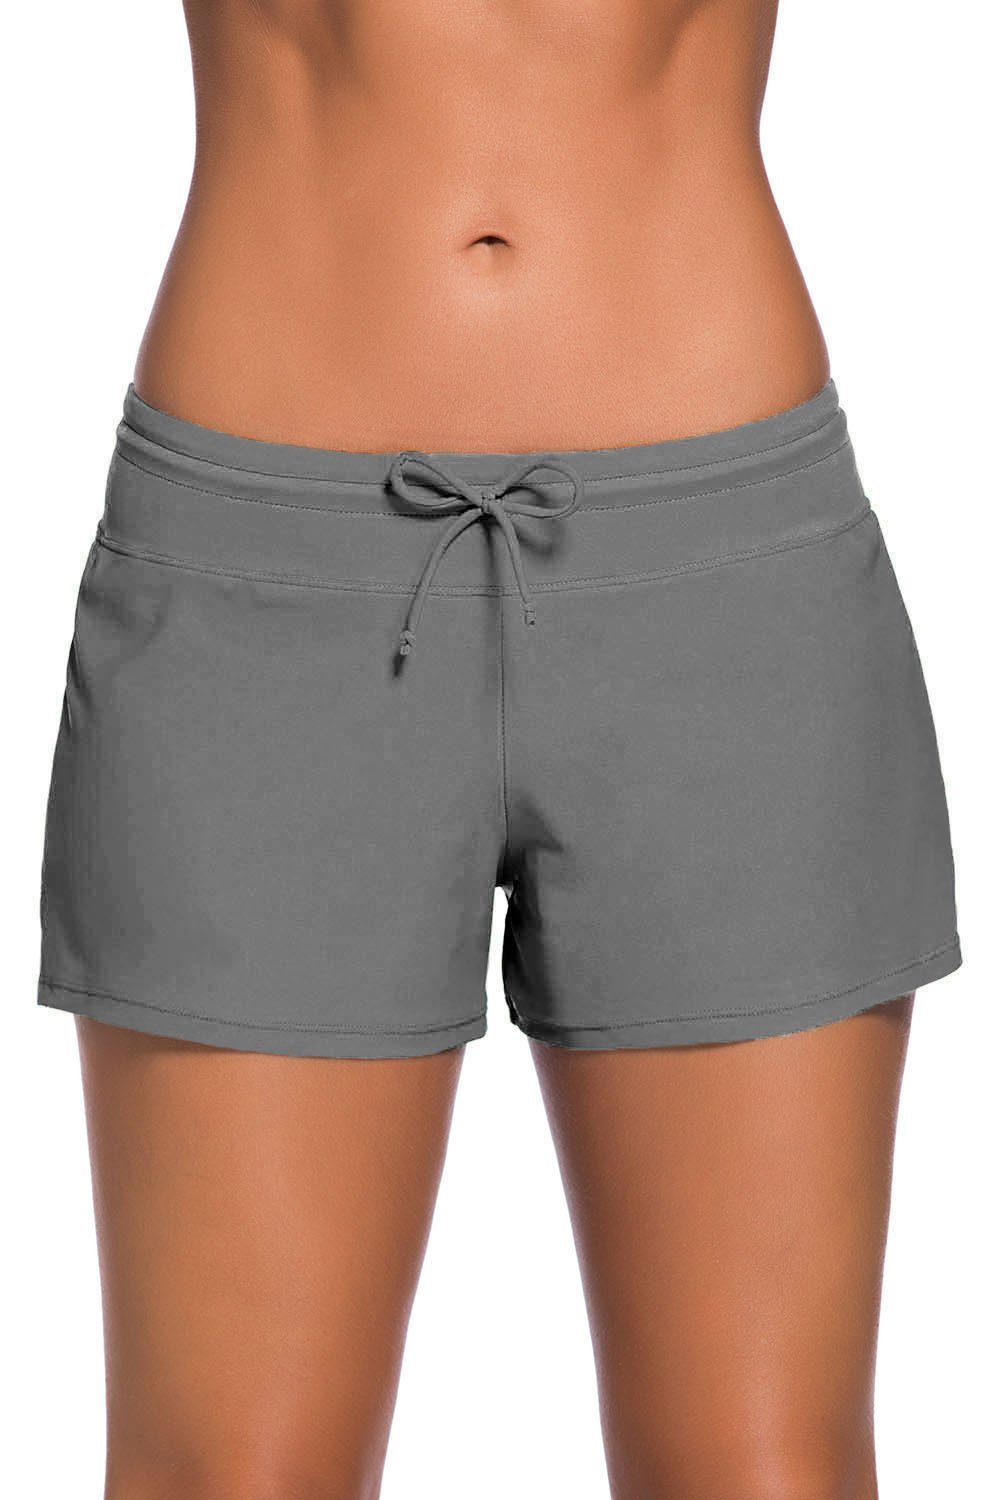 Burkshires Women's Comfortable Swim Boardshort Waistband Swimsuit Bottom Gray Large